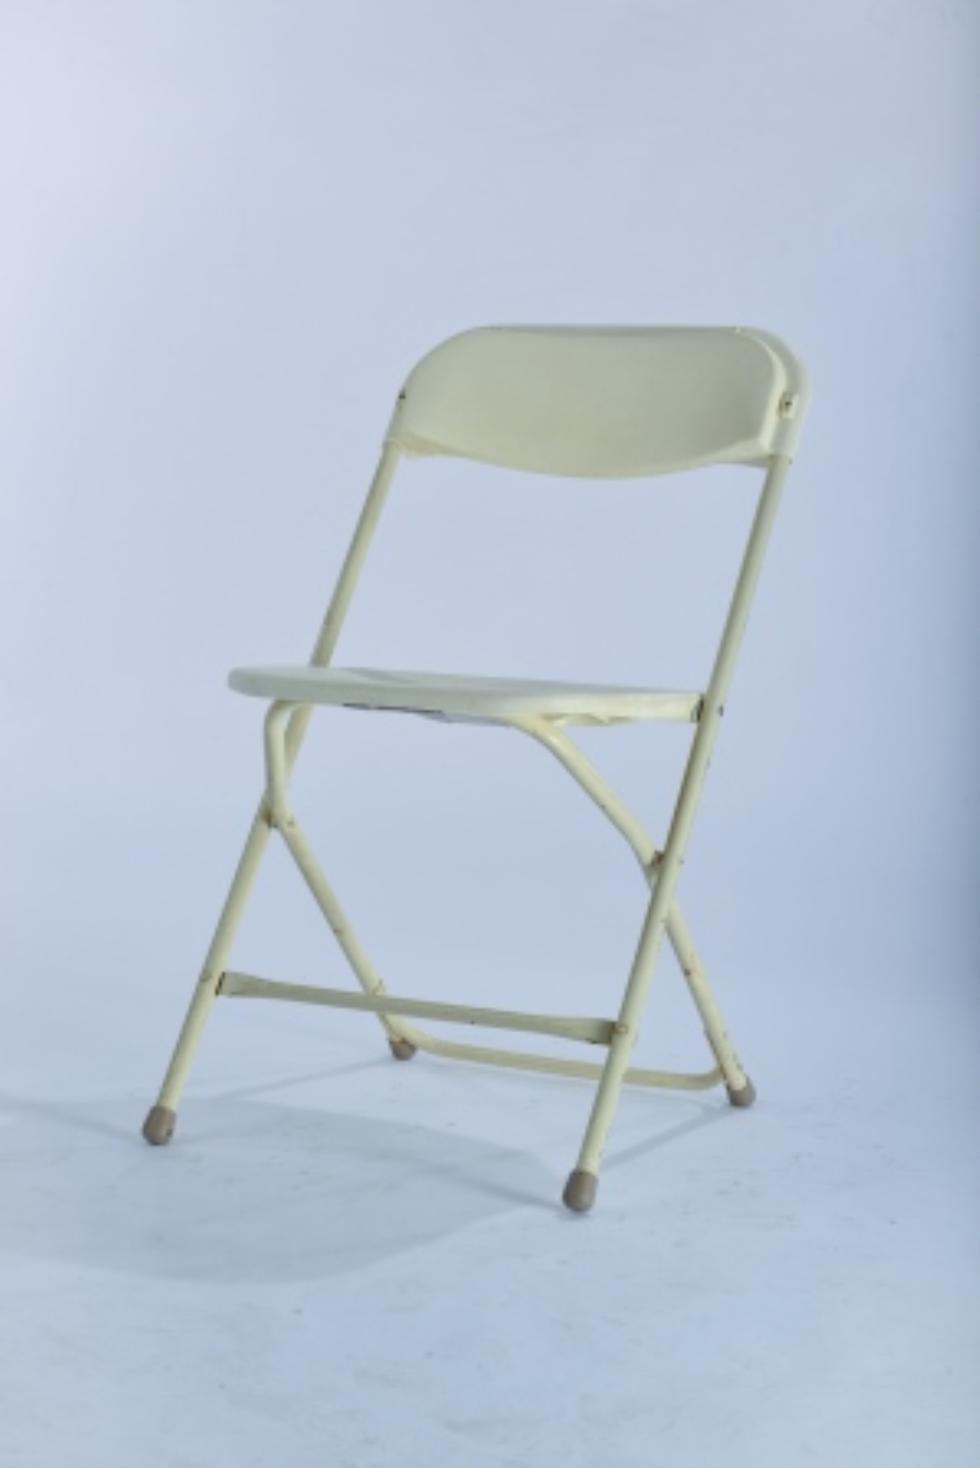 Marianne s Rentals Samsonite Folding Chair f White Rentals